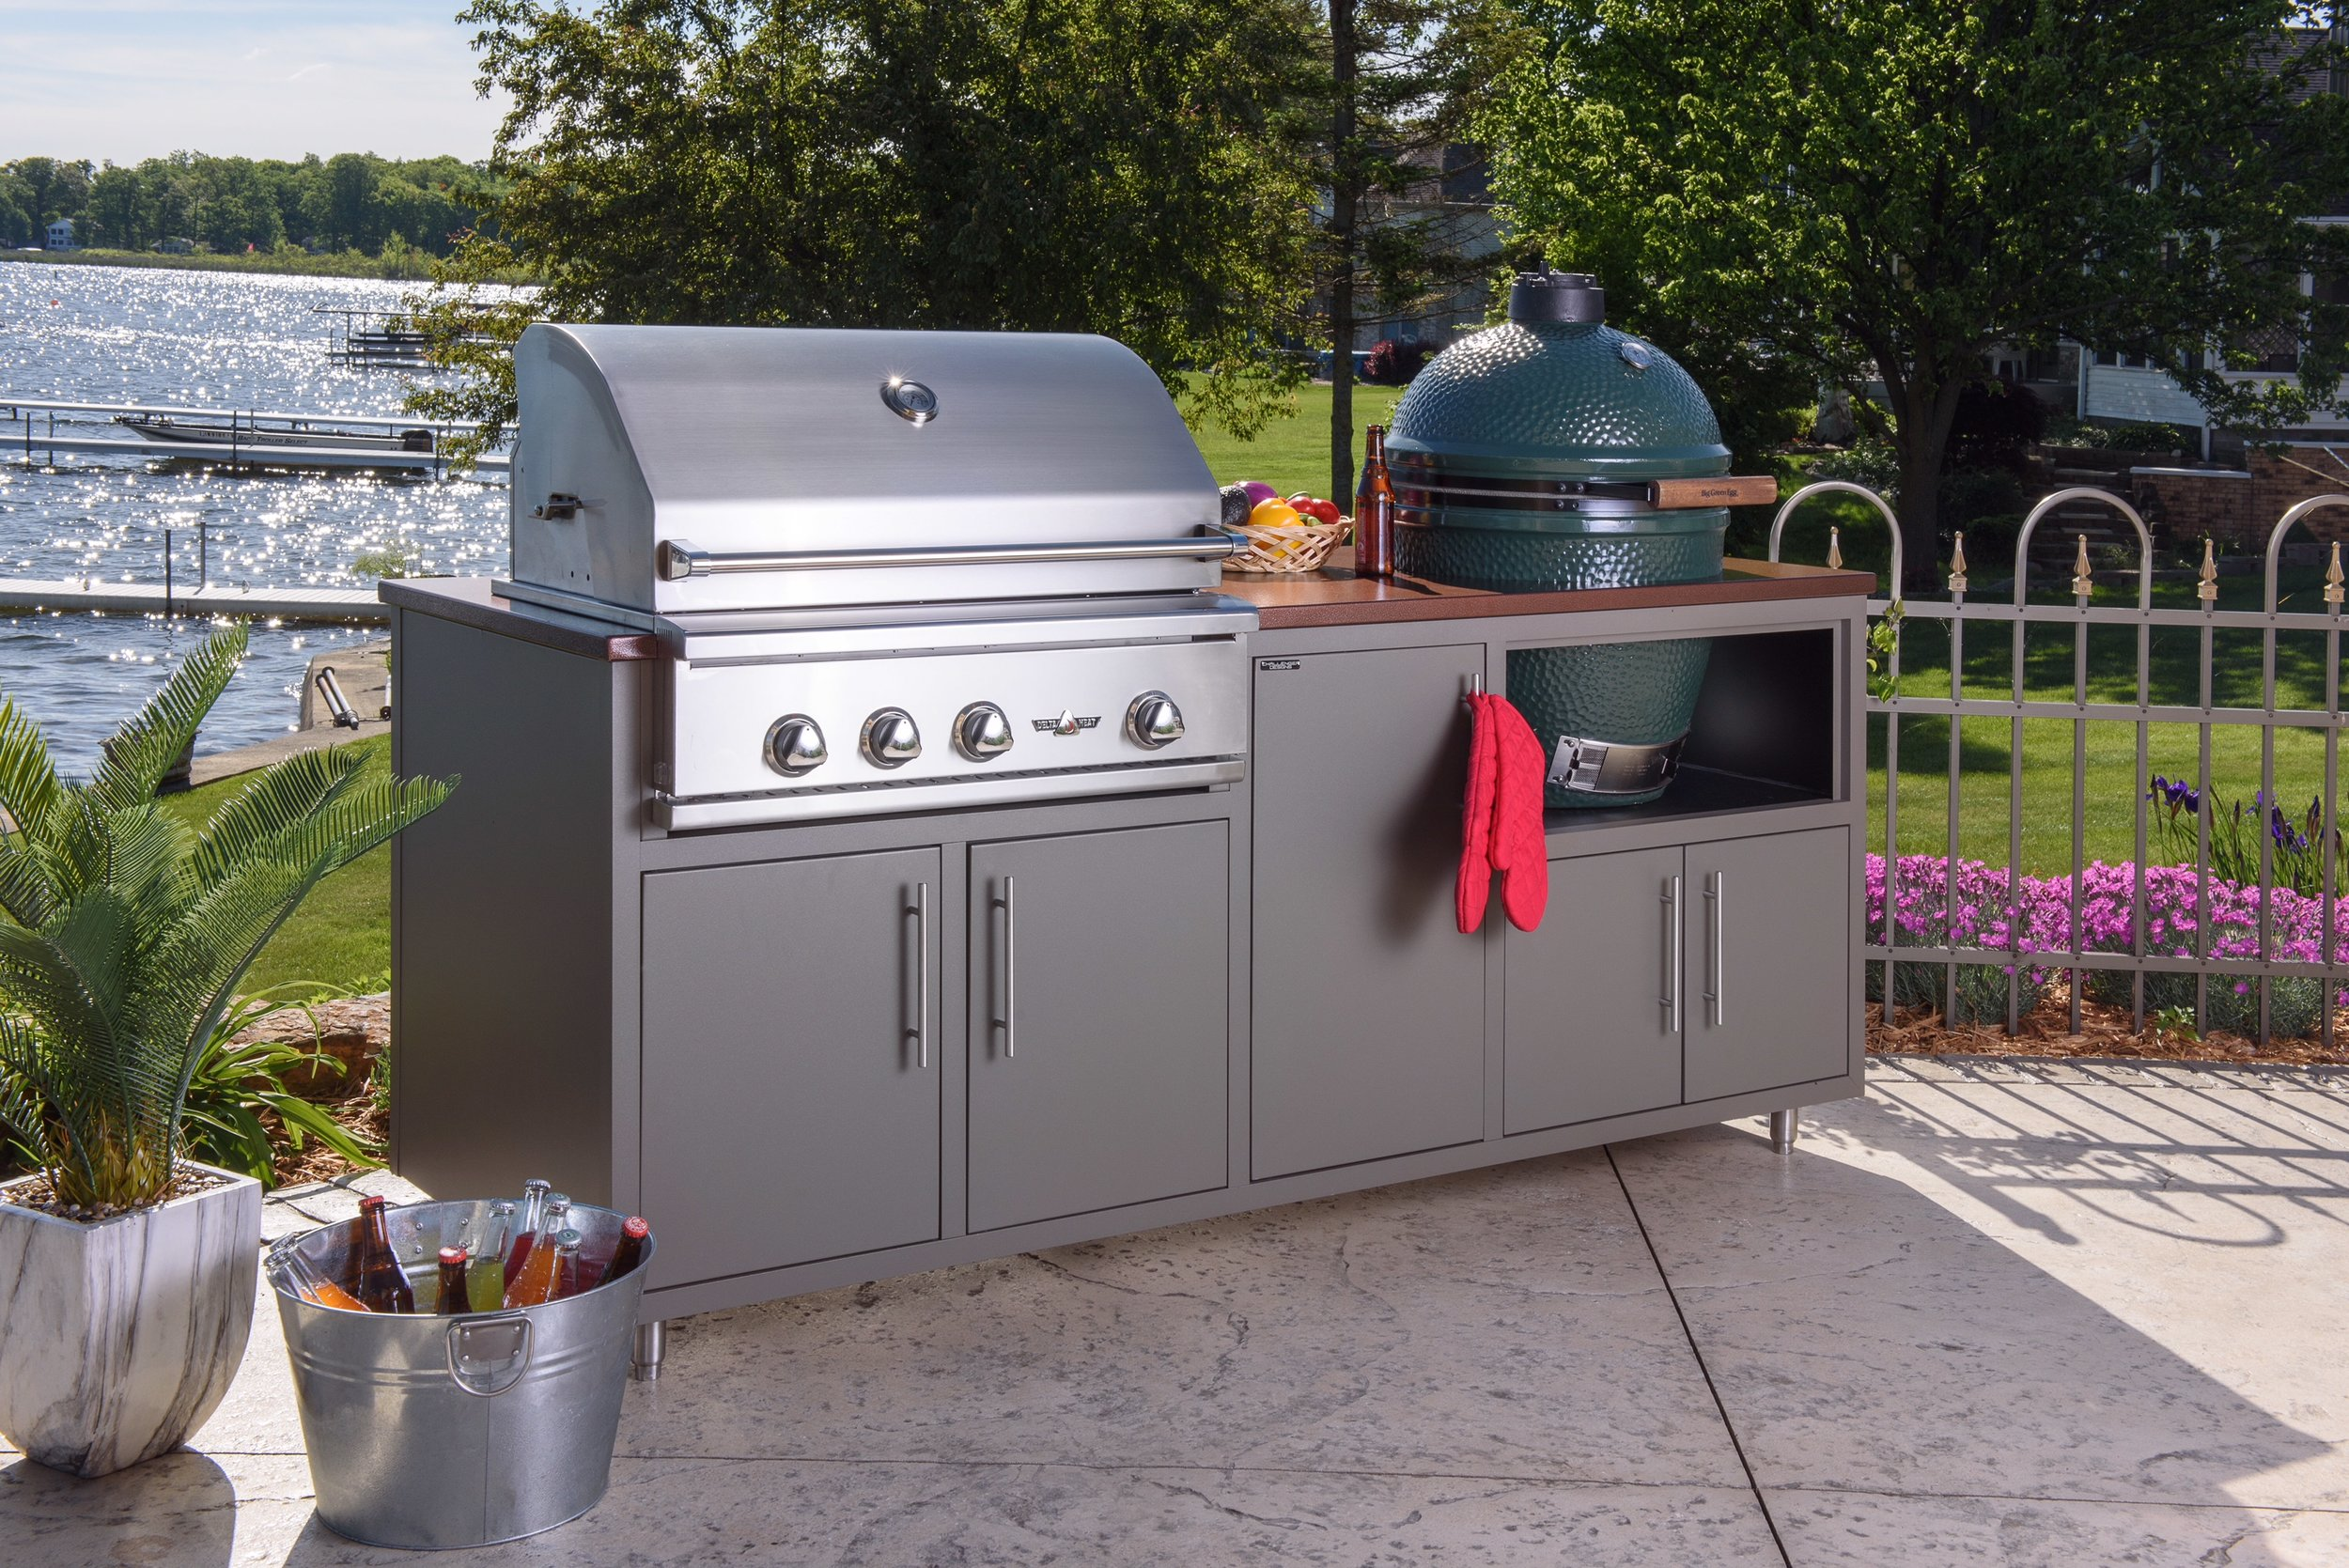 """ONLY $5,836!  Model 17COGI-82 is 82"""" wide (30"""" deep) and includes a Delta Heat 32"""" Grill (LP or NG), a 30"""" Large Green Egg, two double door cabinet, and a tall single door cabinet.  (With Infrared Rotisserie $6,010. With Rotisserie and Sear Zone $6,126)  Color pictured is Grey Glimmer with Silver Vein counter-top. Also available (in stock) in Cappuccino with Copper Vein counter-top!"""